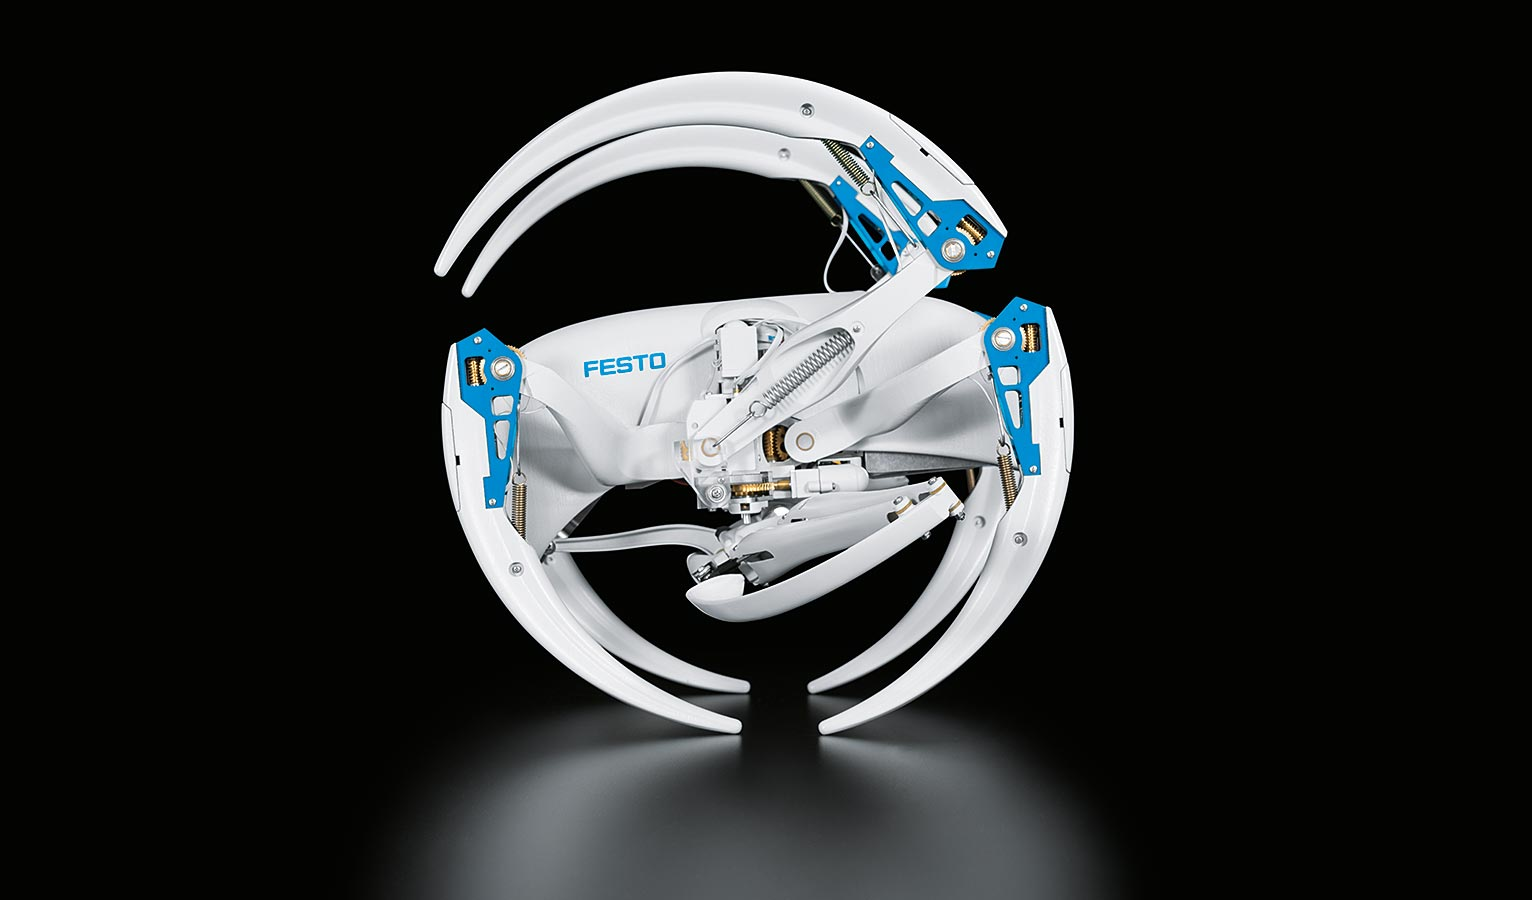 Festo's latest bio-inspired creations are a robo-bat and rolling robo-spider